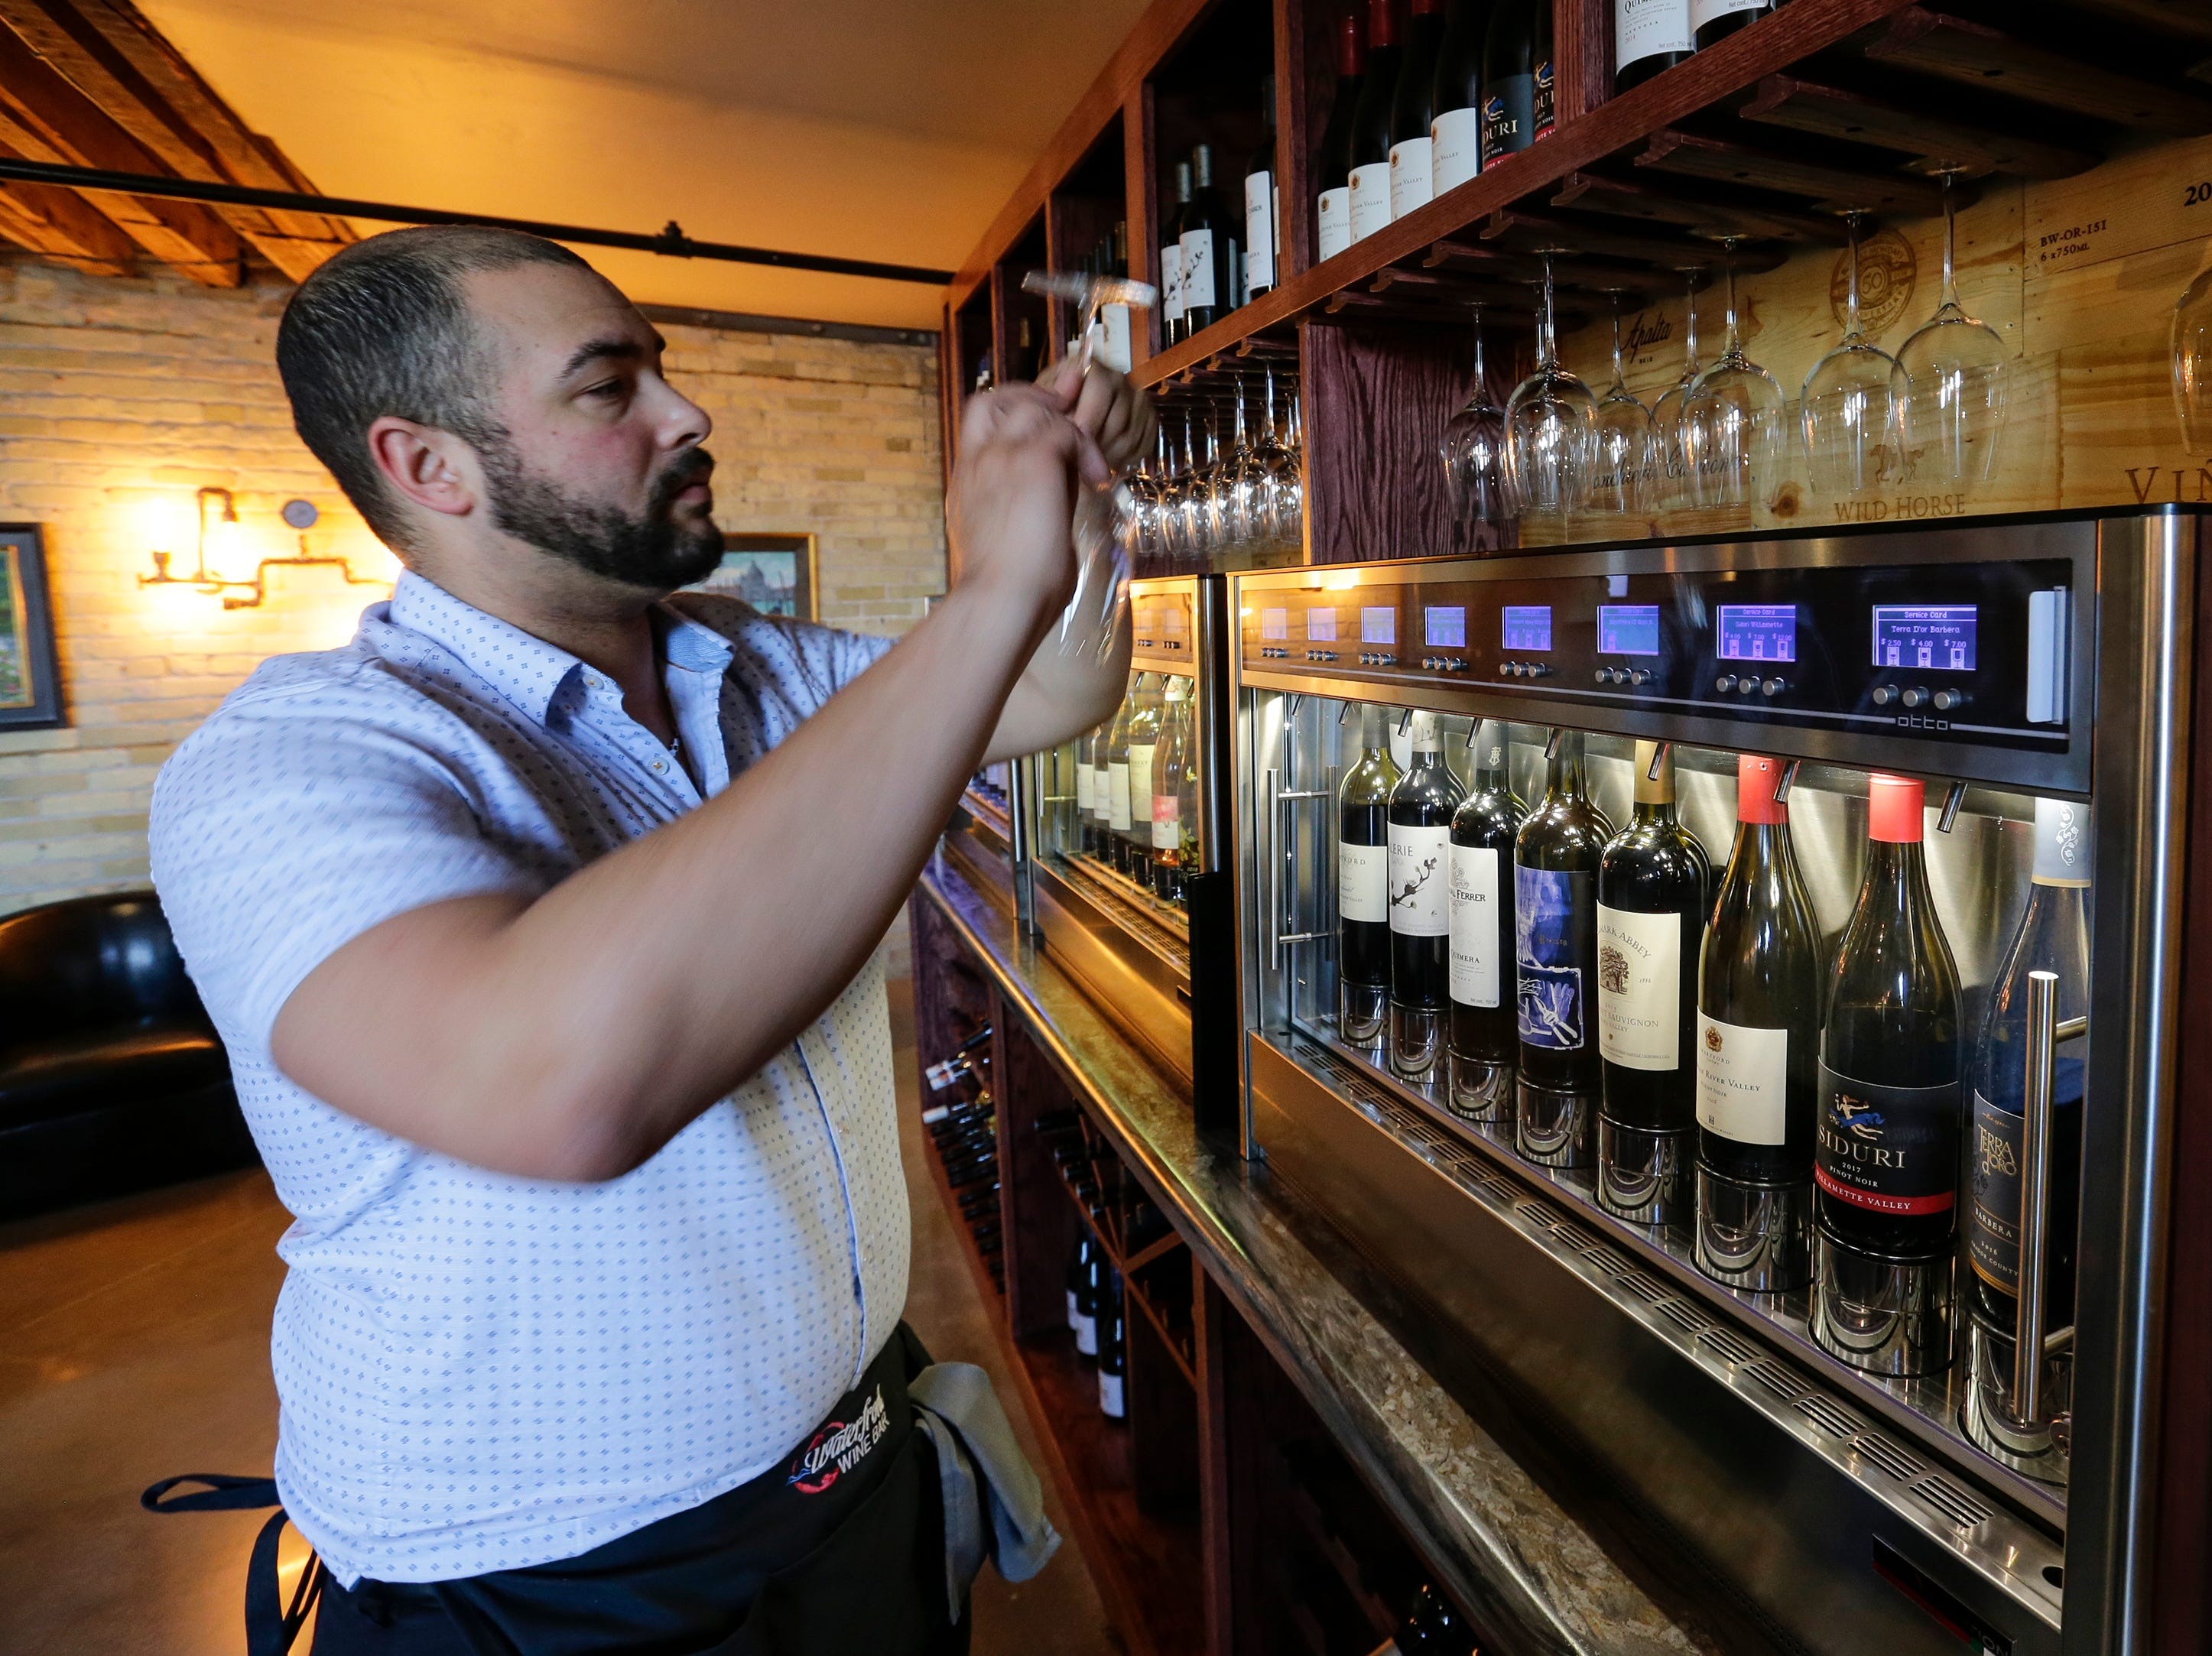 Rick Hoeltke inspects a glass before pouring from the self-serve wine machine at the Waterfront Wine Bar Saturday, May 4, 2019, in Manitowoc, Wis. Joshua Clark/USA TODAY NETWORK-Wisconsin